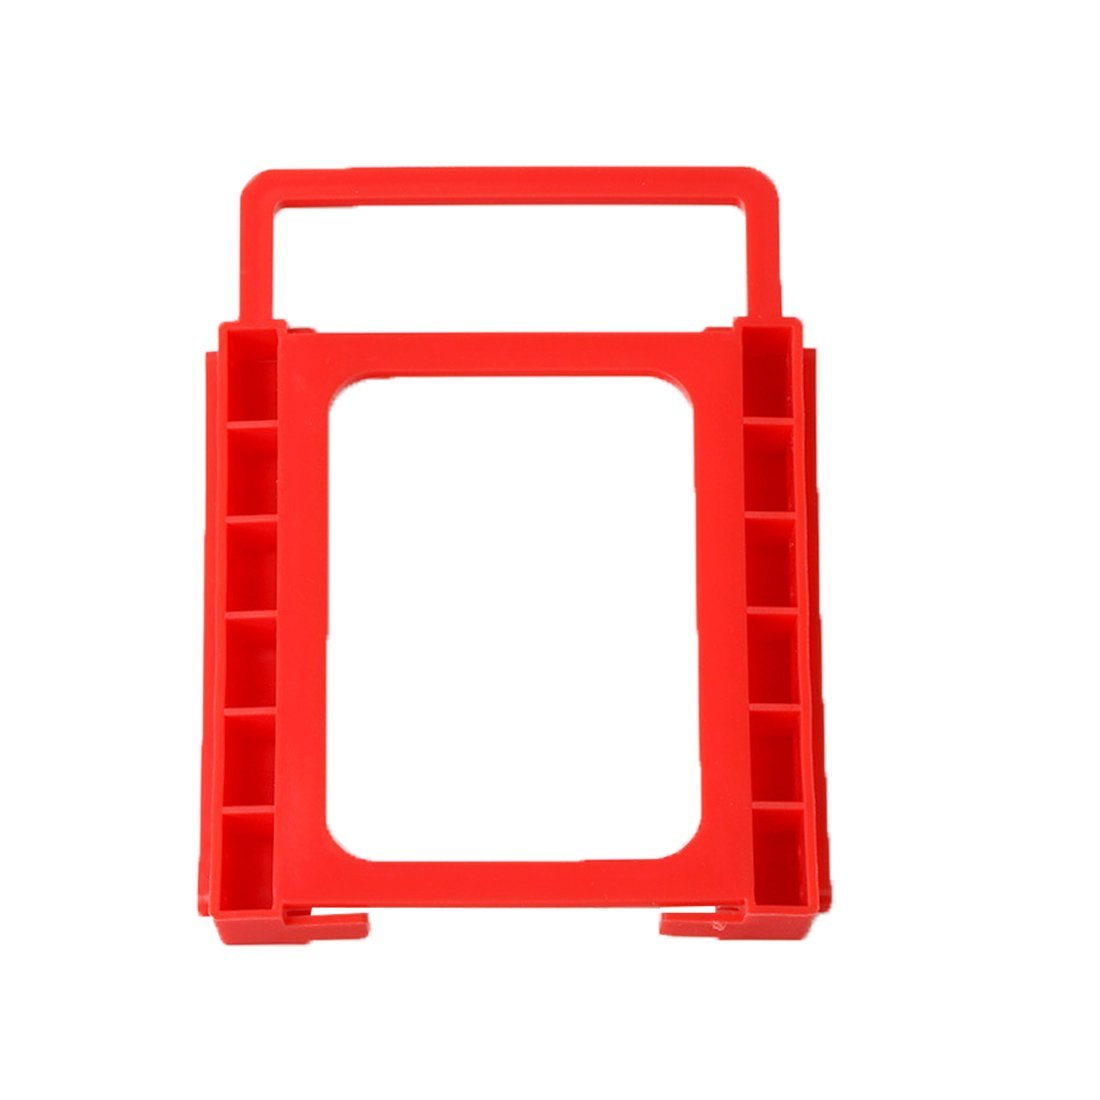 New Arrival 2.5 To 3.5 Inch SSD To HDD Screw-less Mounting Adapter Bracket Hard Drive Holder Mounting Adapter Bracket RED